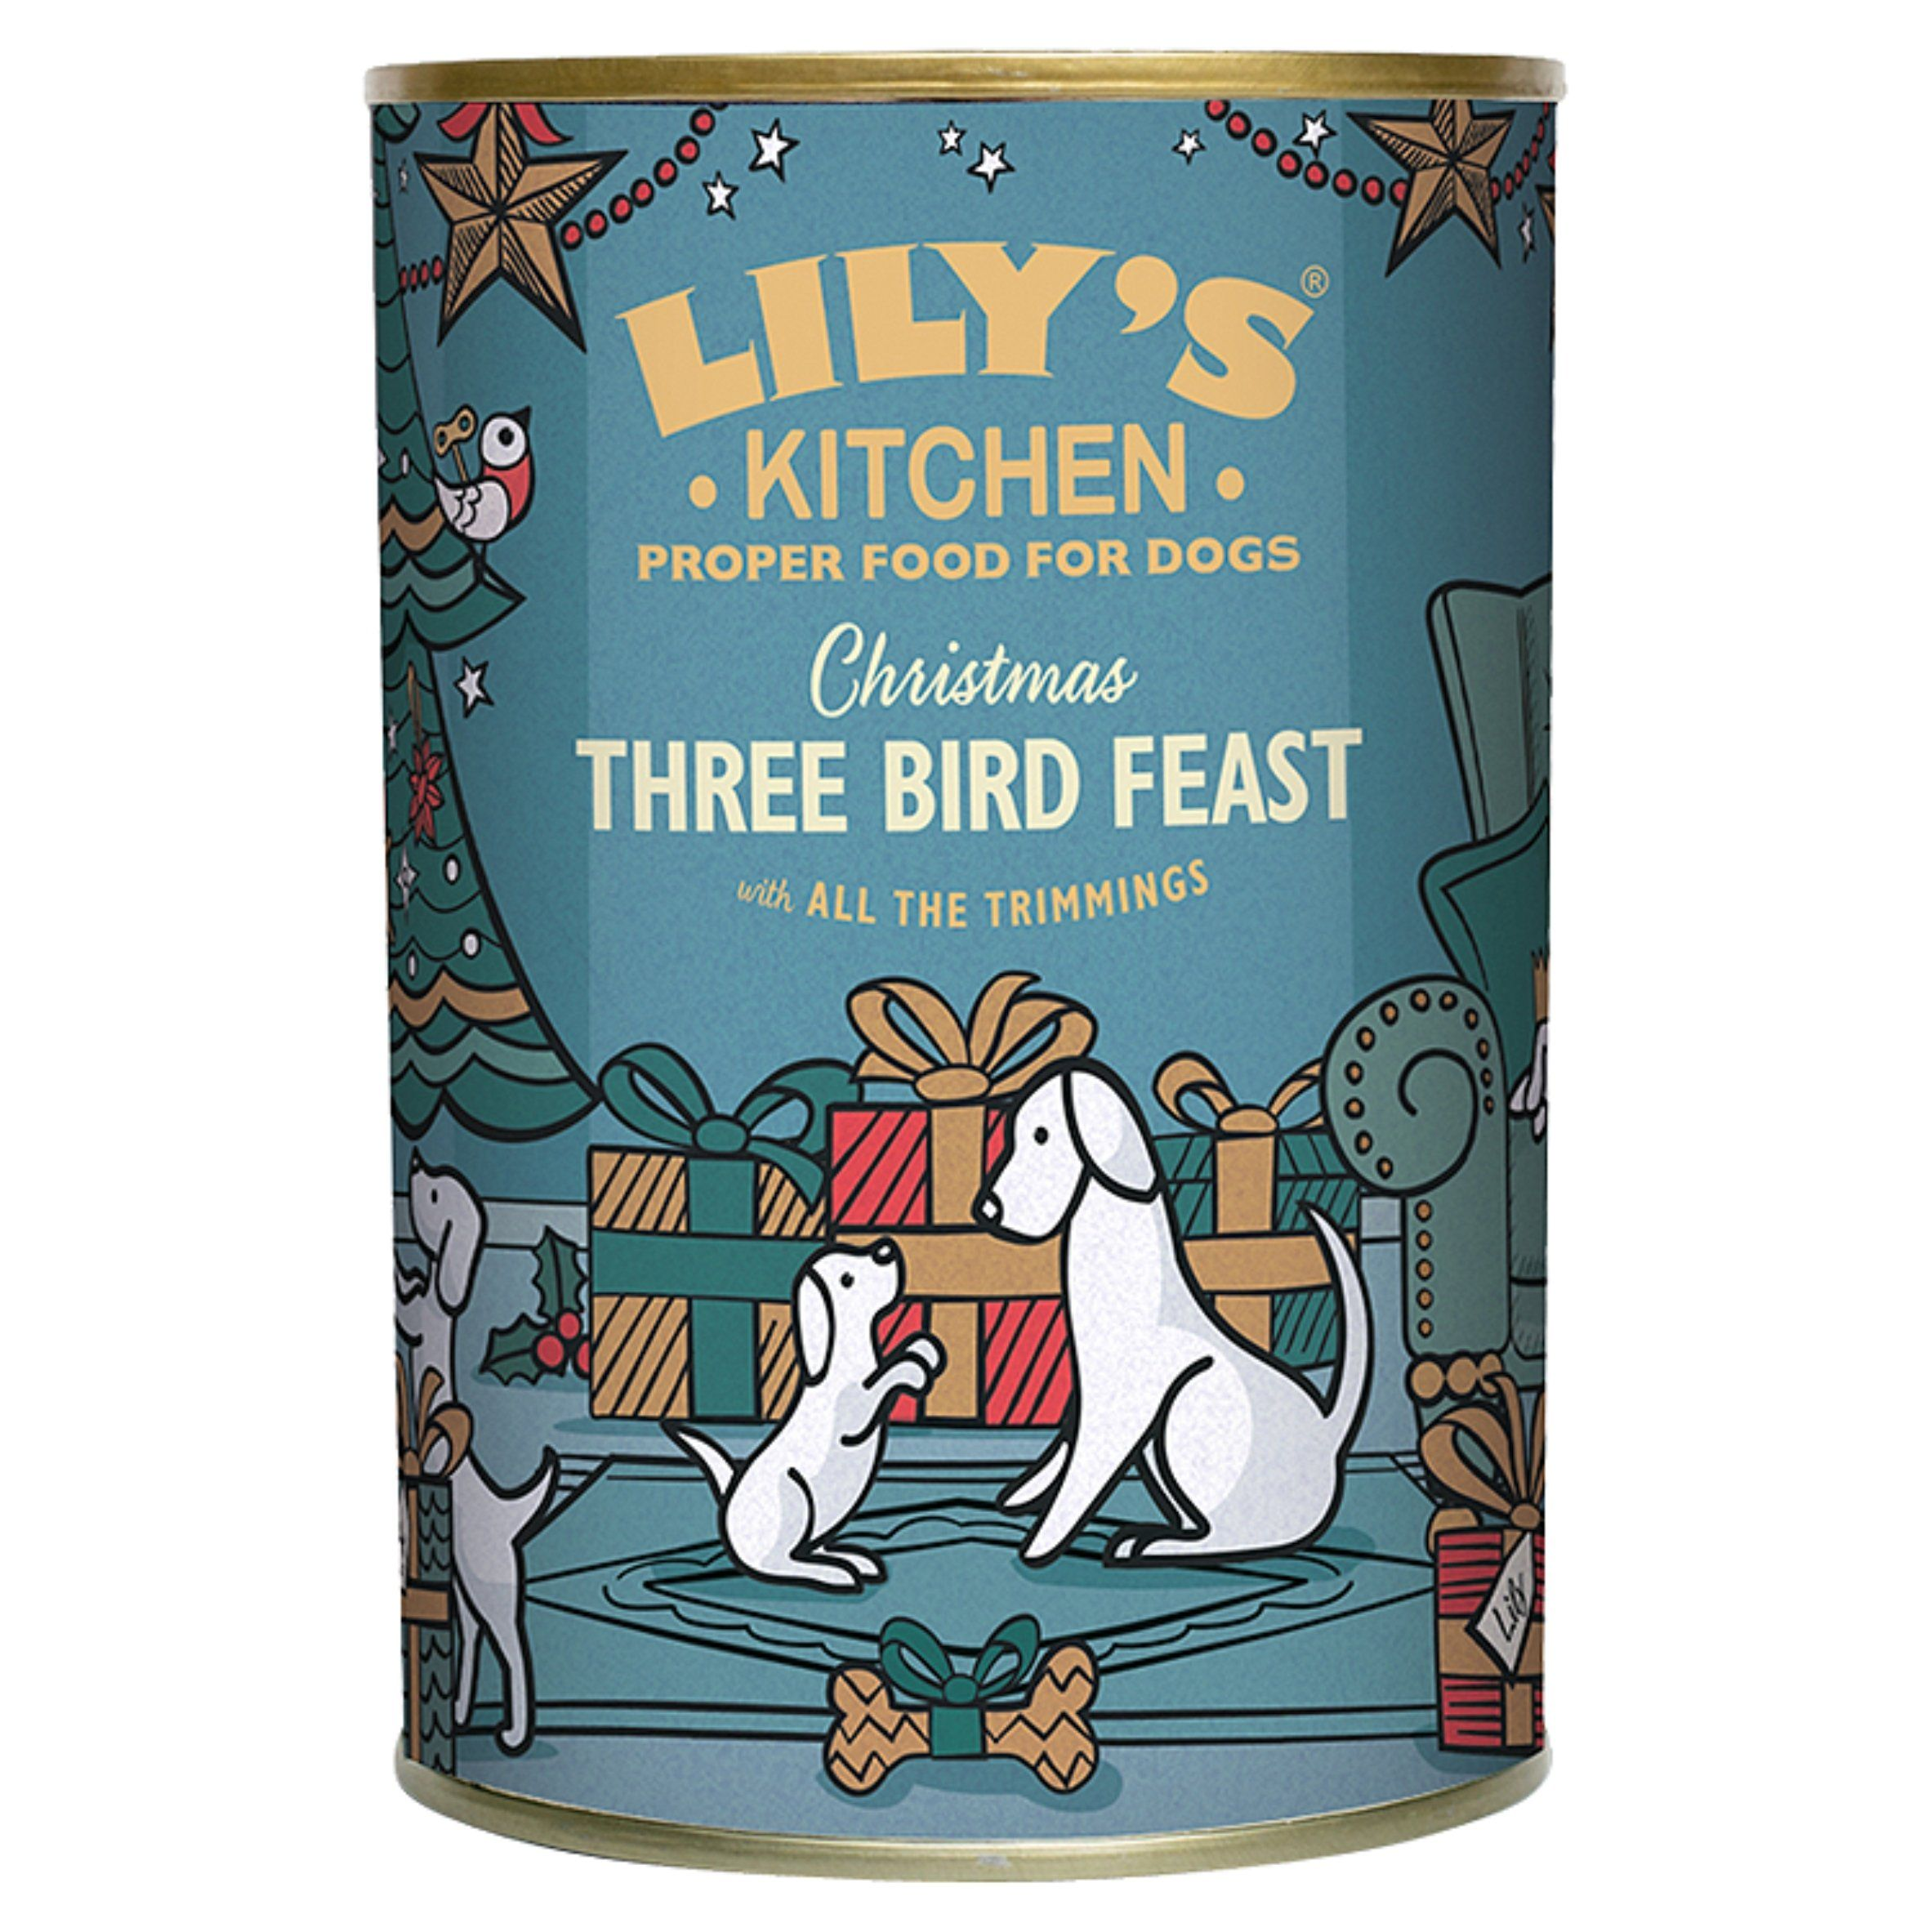 Christmas Three Bird Feast for Dogs (400g) Three birds